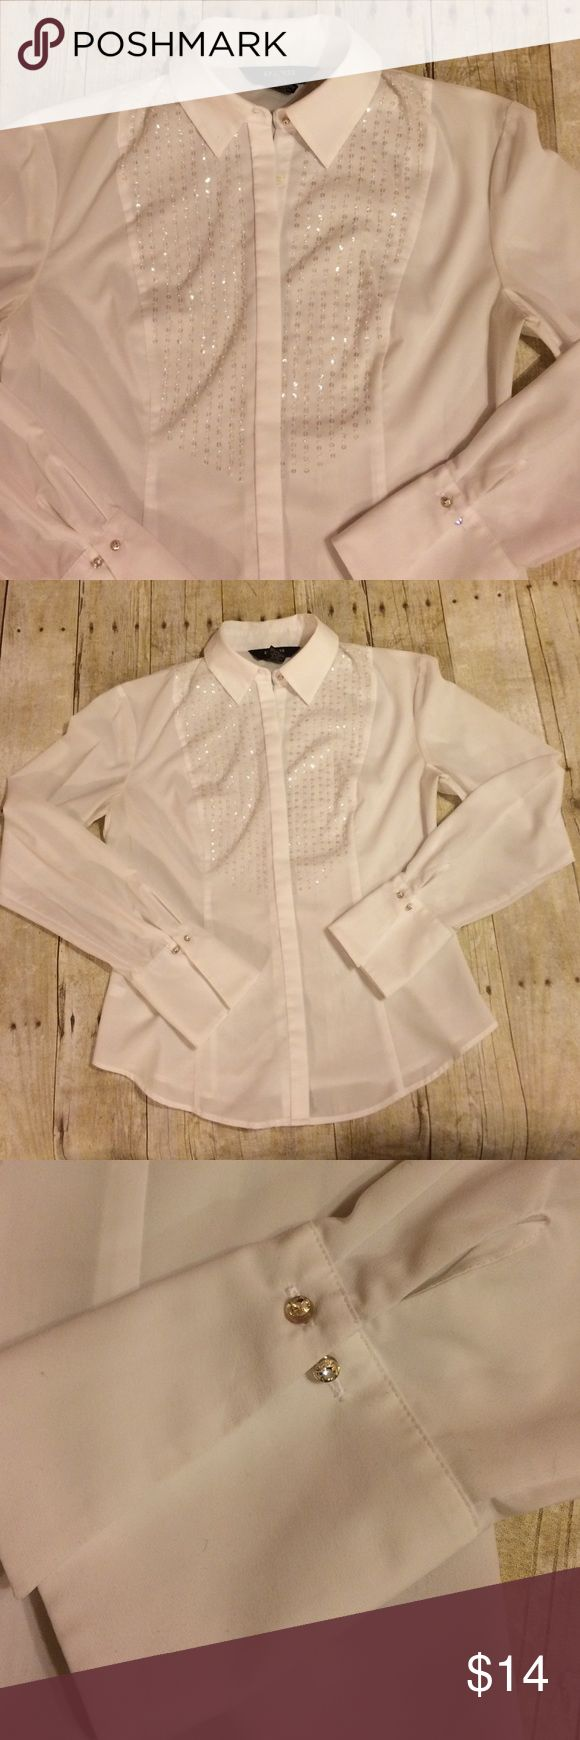 Express white shirt Express white shirt, sleeves with cufflinks. Perfect for work or for a party. It also looks great with cute jeans. I bought it but it no longer fits. In great condition. Stretch fabric, 96% polyester , 4% spandex. Sz is 3/4 which is basically a small. Express Tops Button Down Shirts